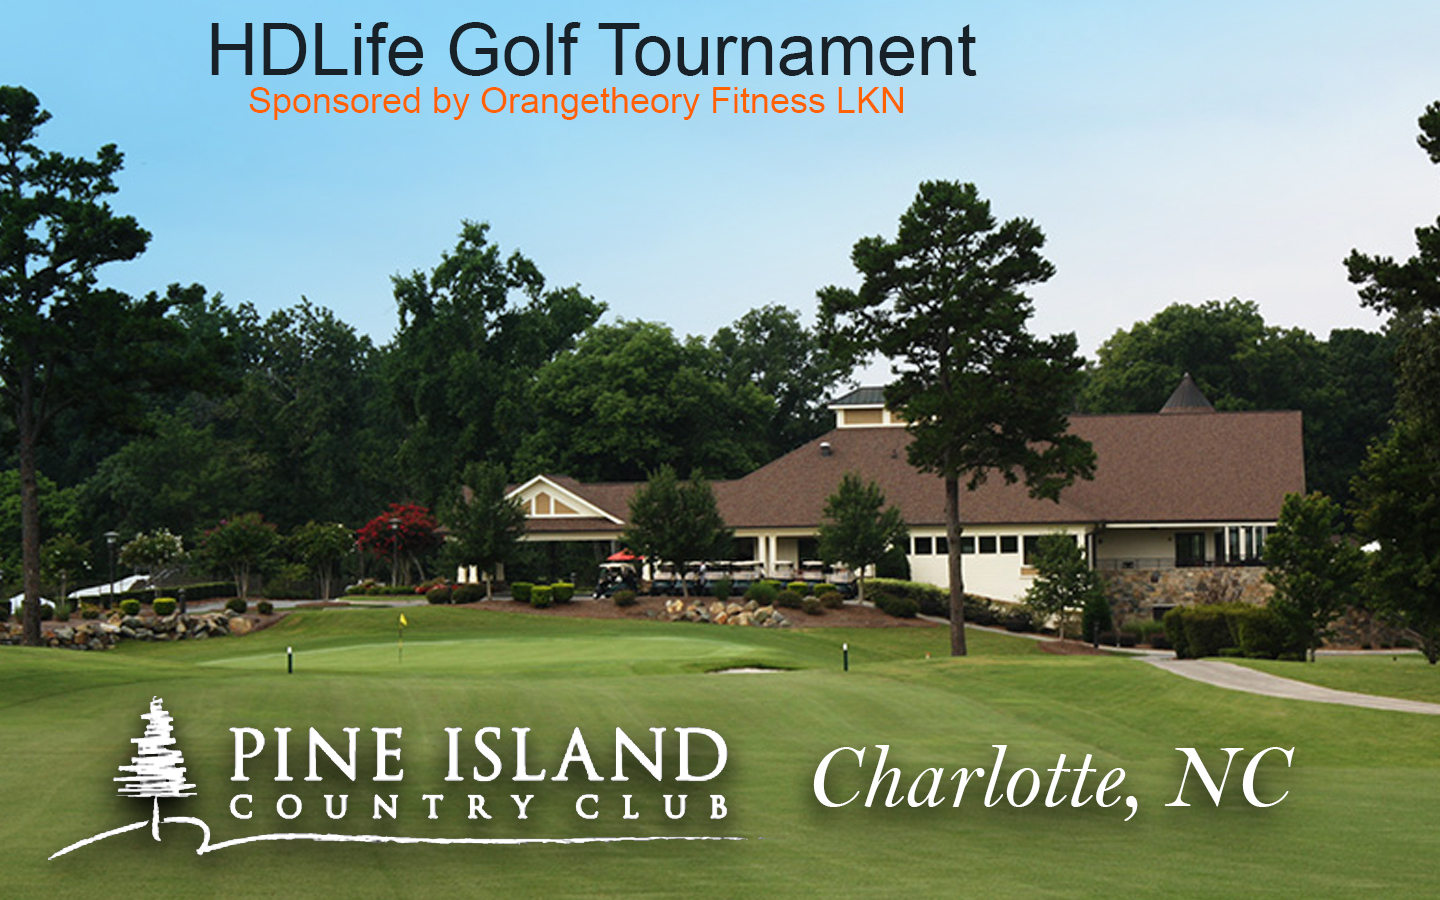 HDLife Foundation Annual Golf Tournament